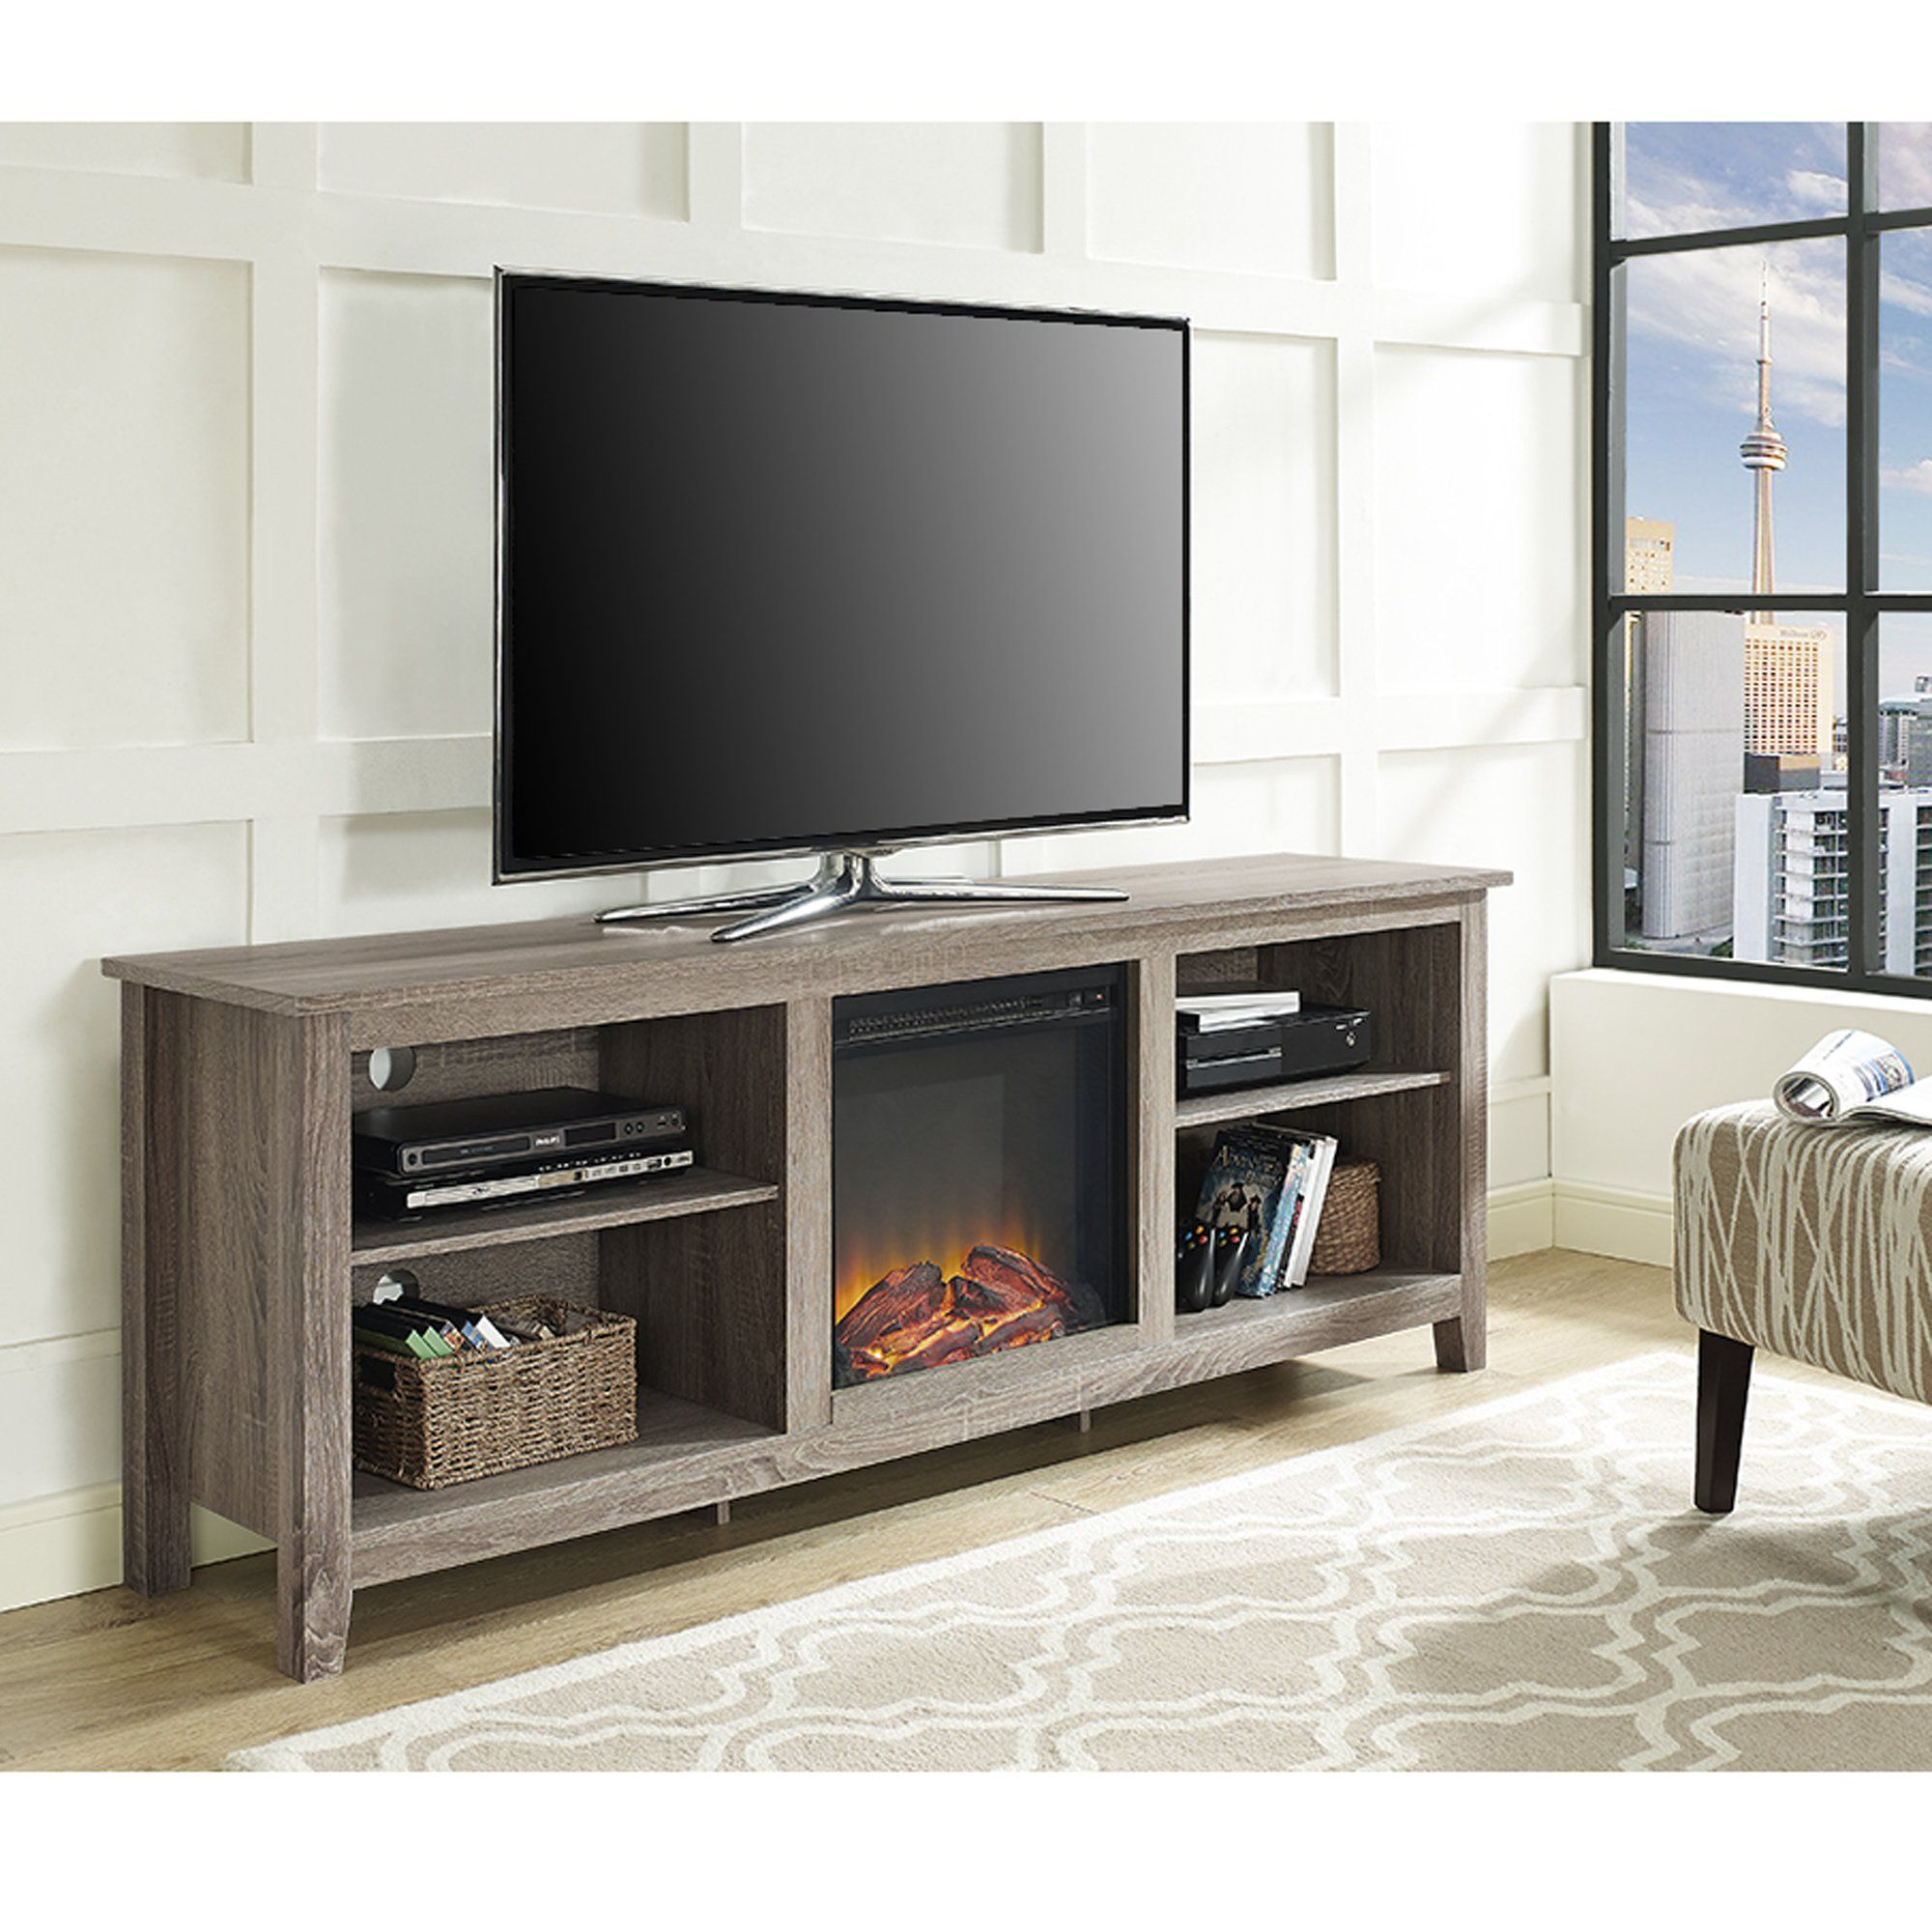 We Furniture Wood Tv Stand With Fireplace 70 Grey Acheter  # Meuble Tv Gris Cendre